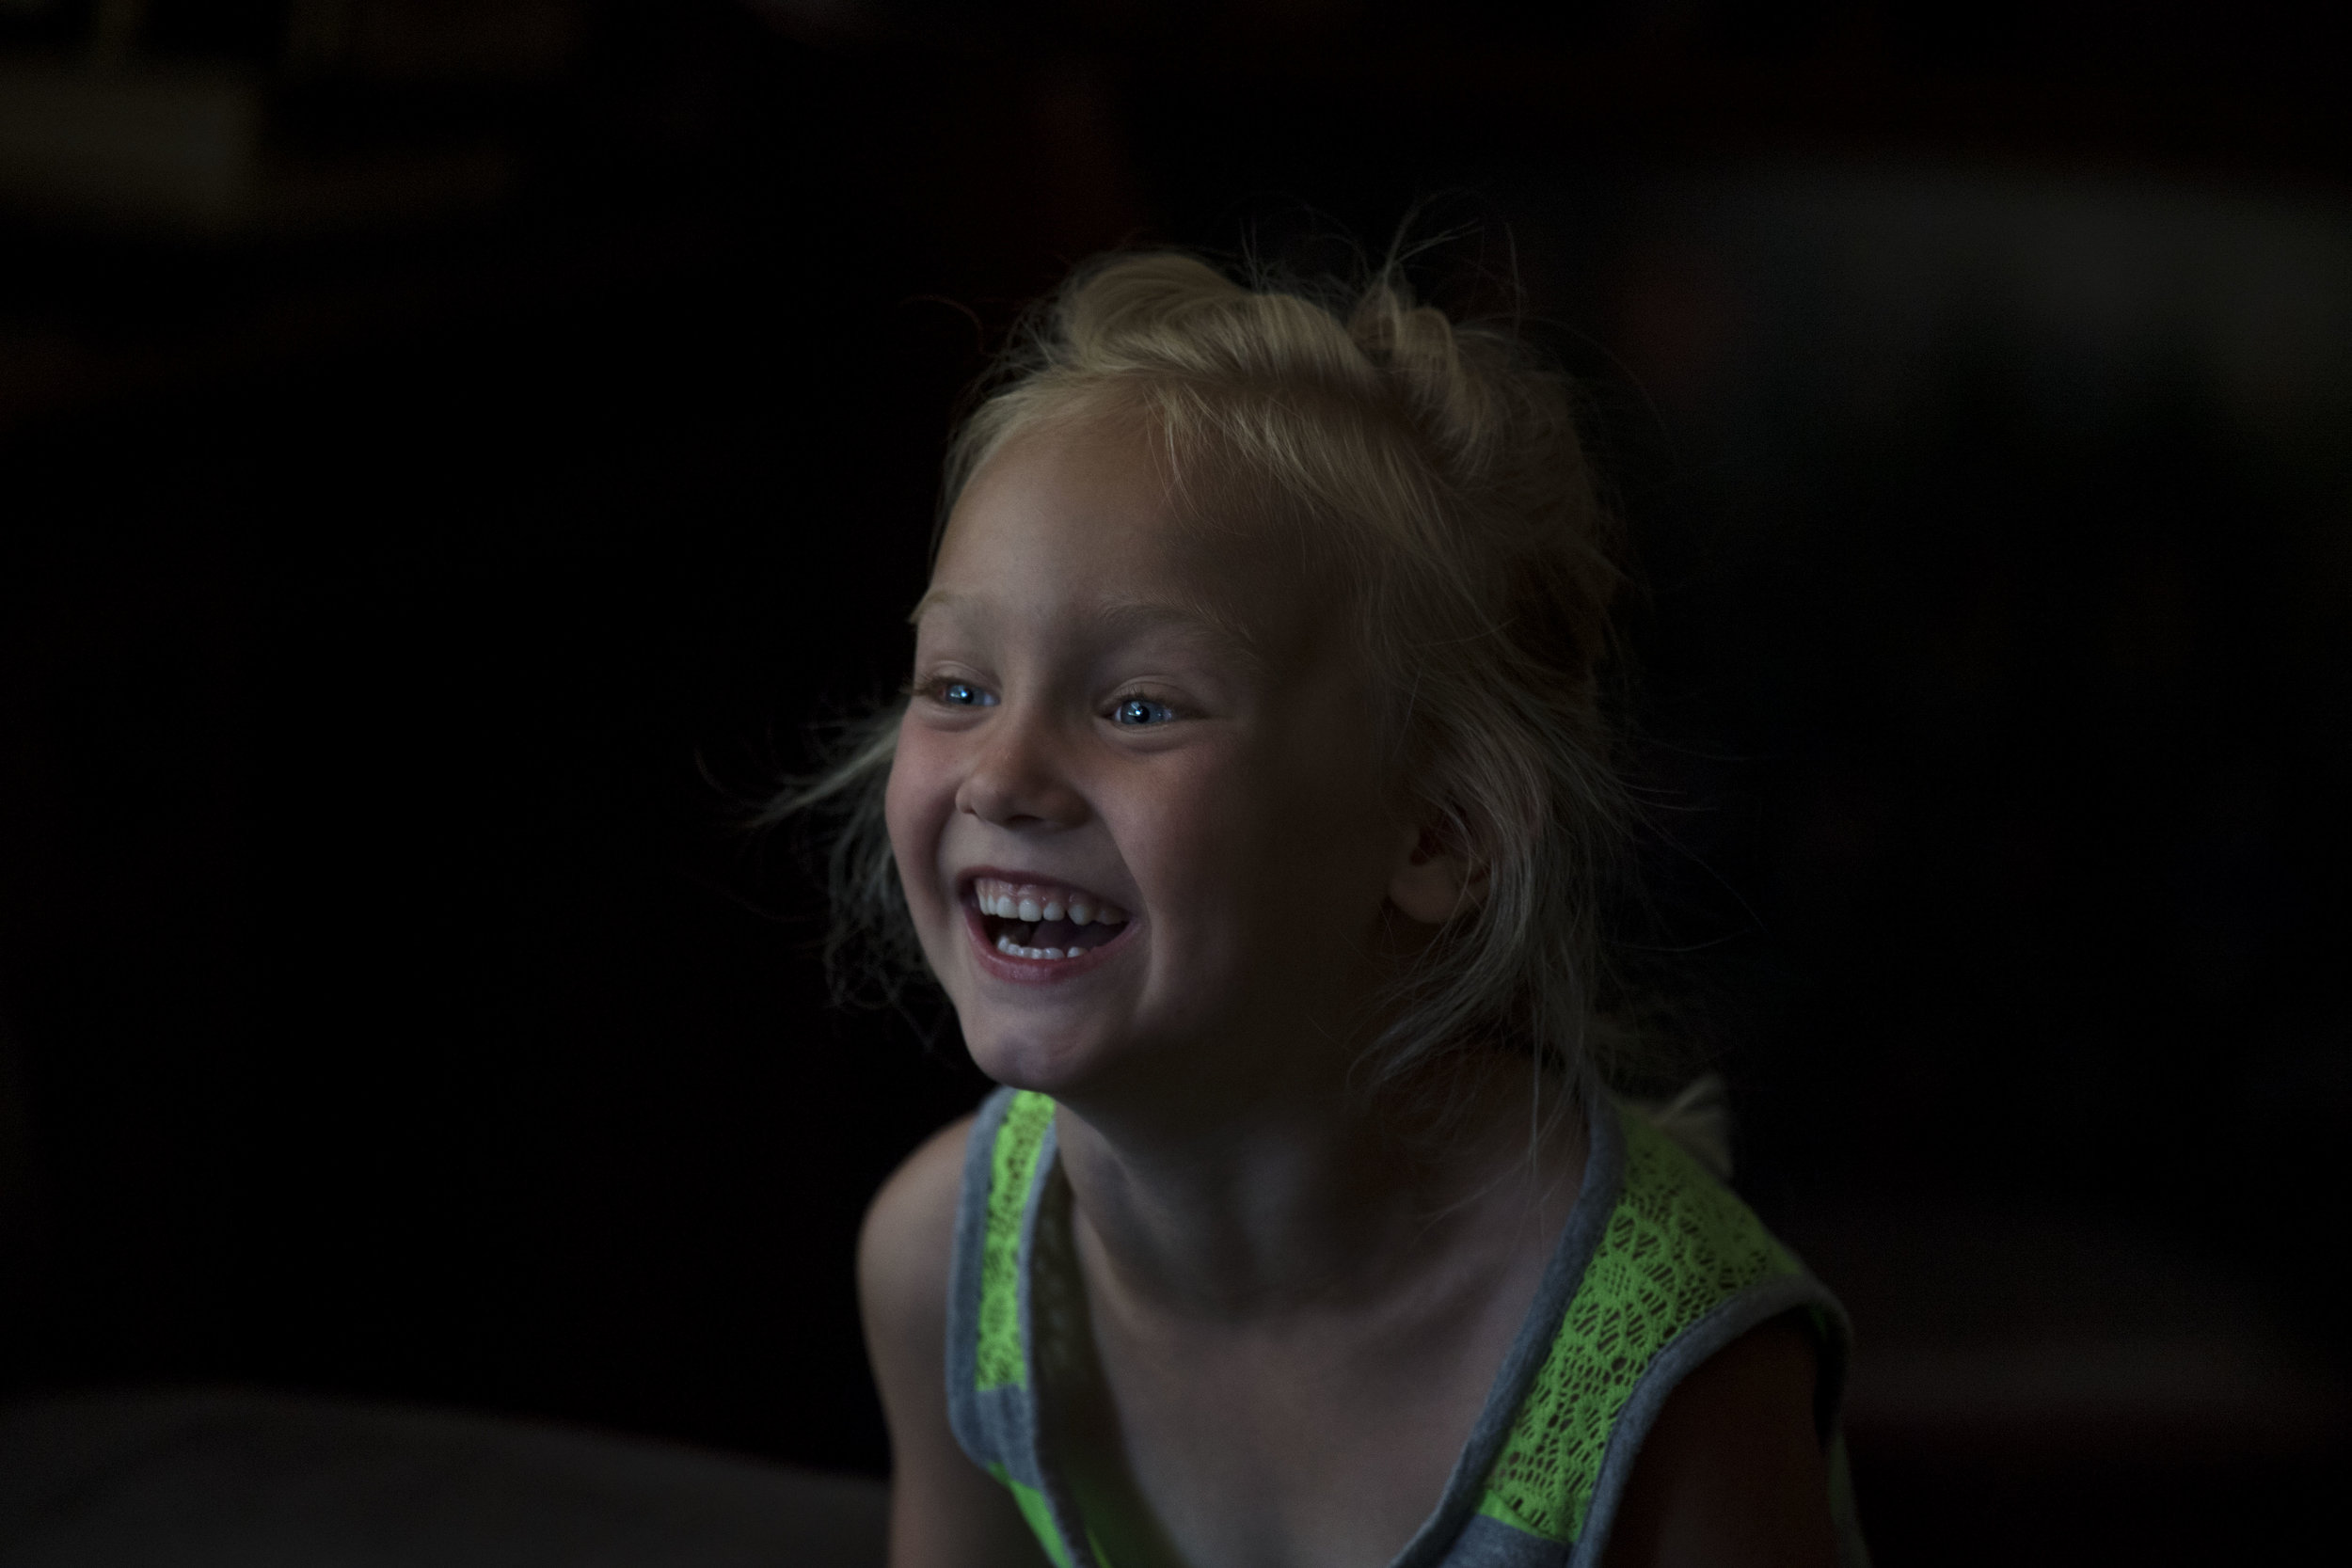 The always smiling Emorie, taken on a Nikon D5 with a 300mm f/4.